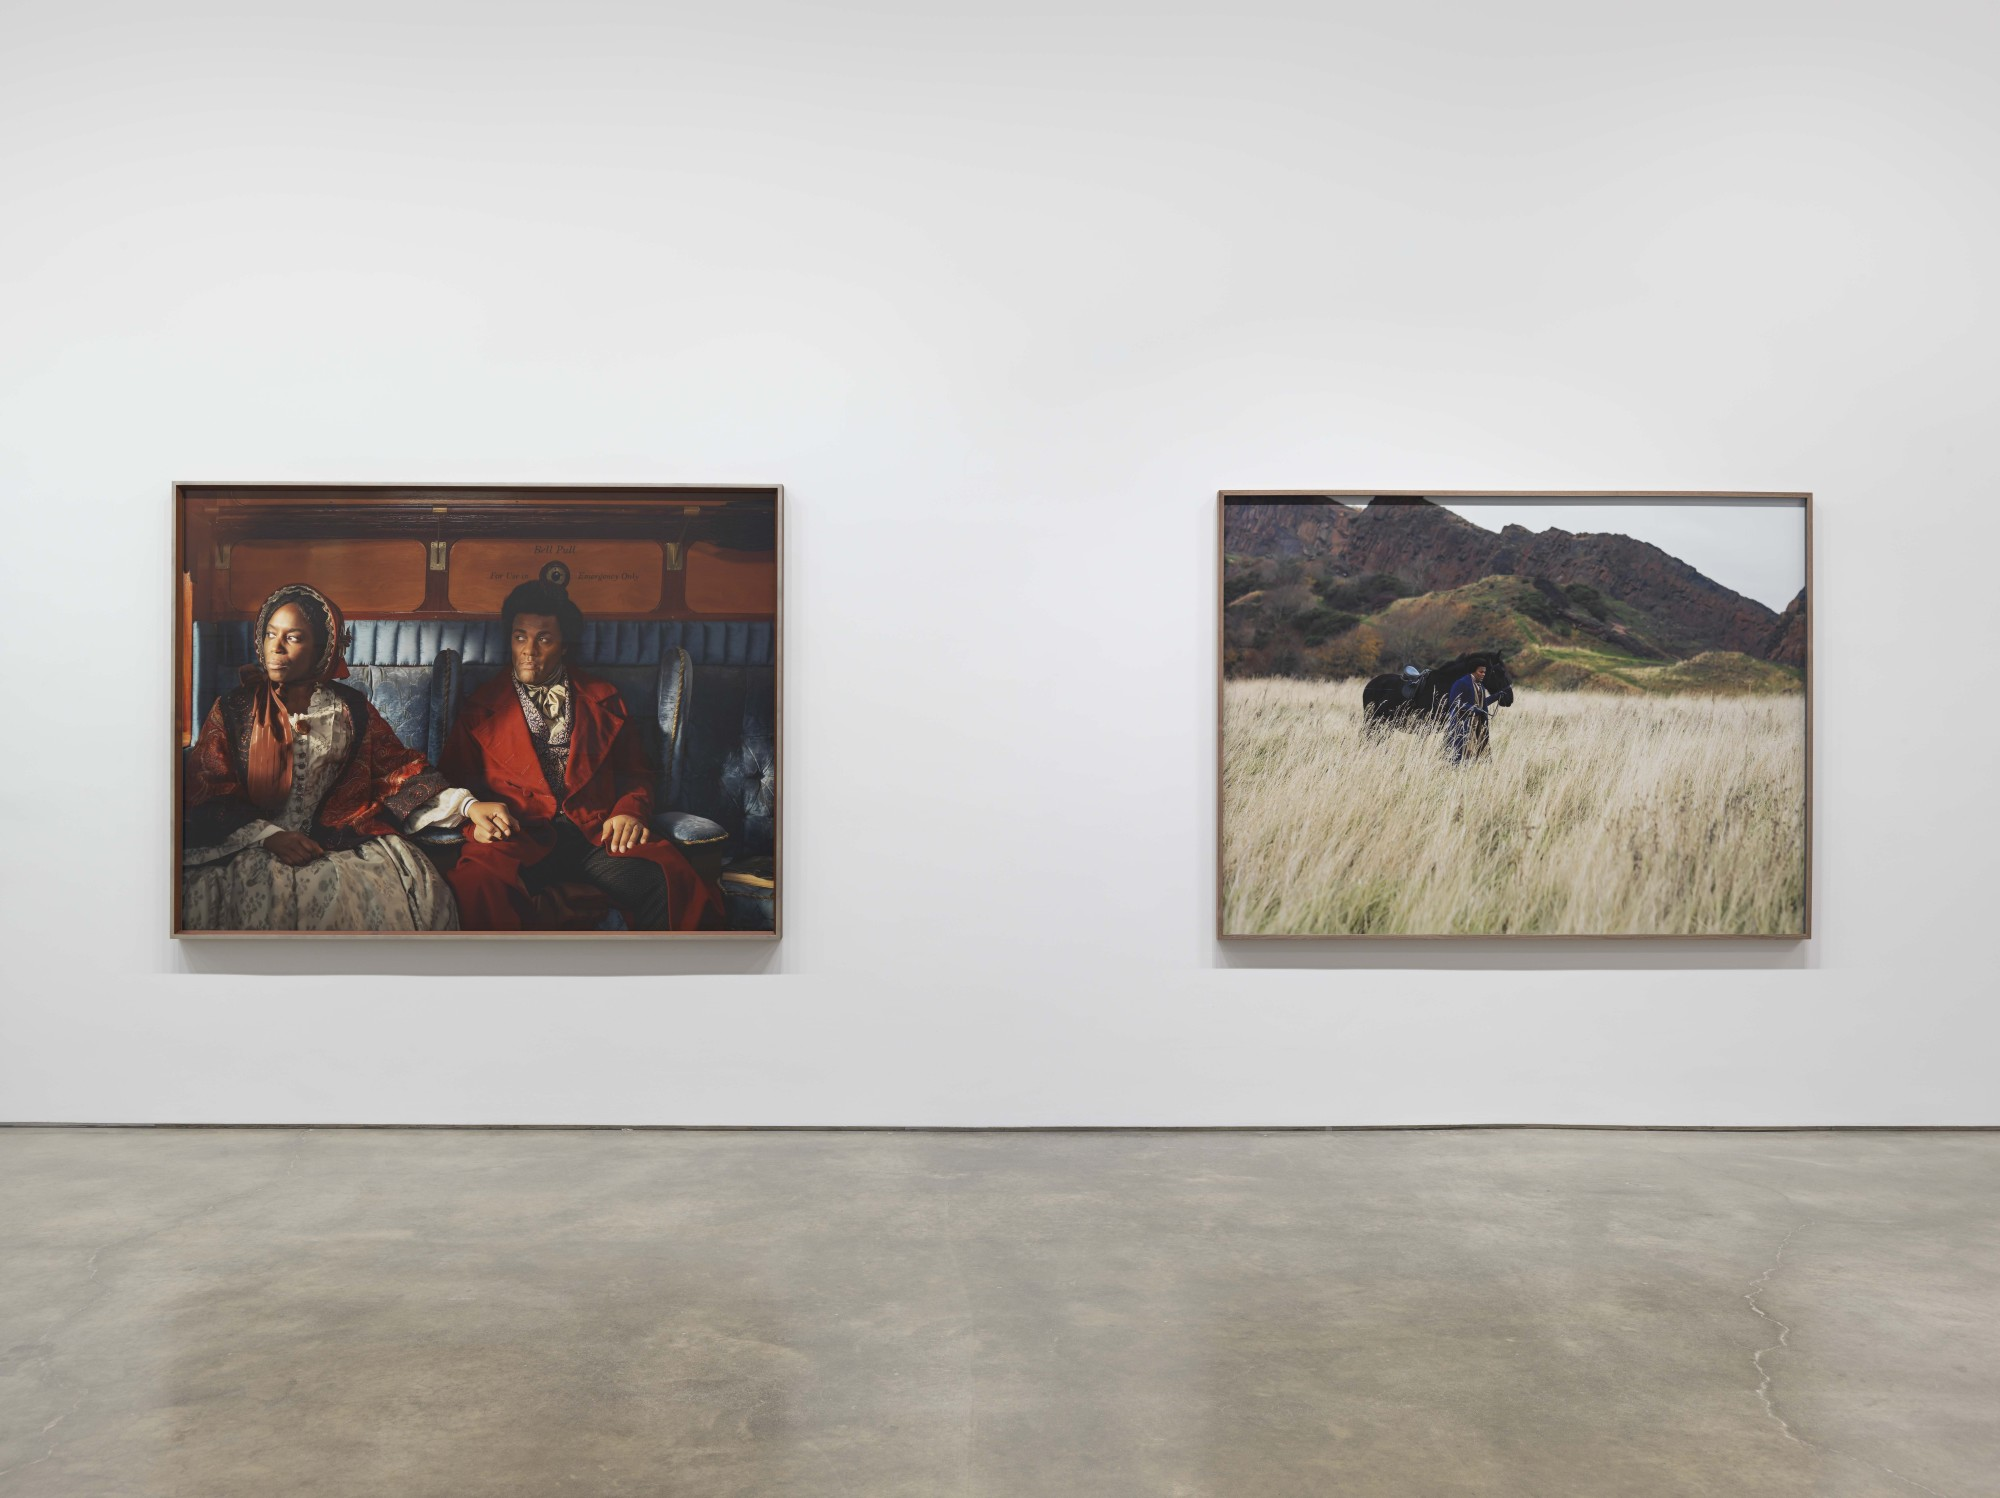 Photographic artworks from Lessons of the Hour series at Metro Pictures, New York, 2019